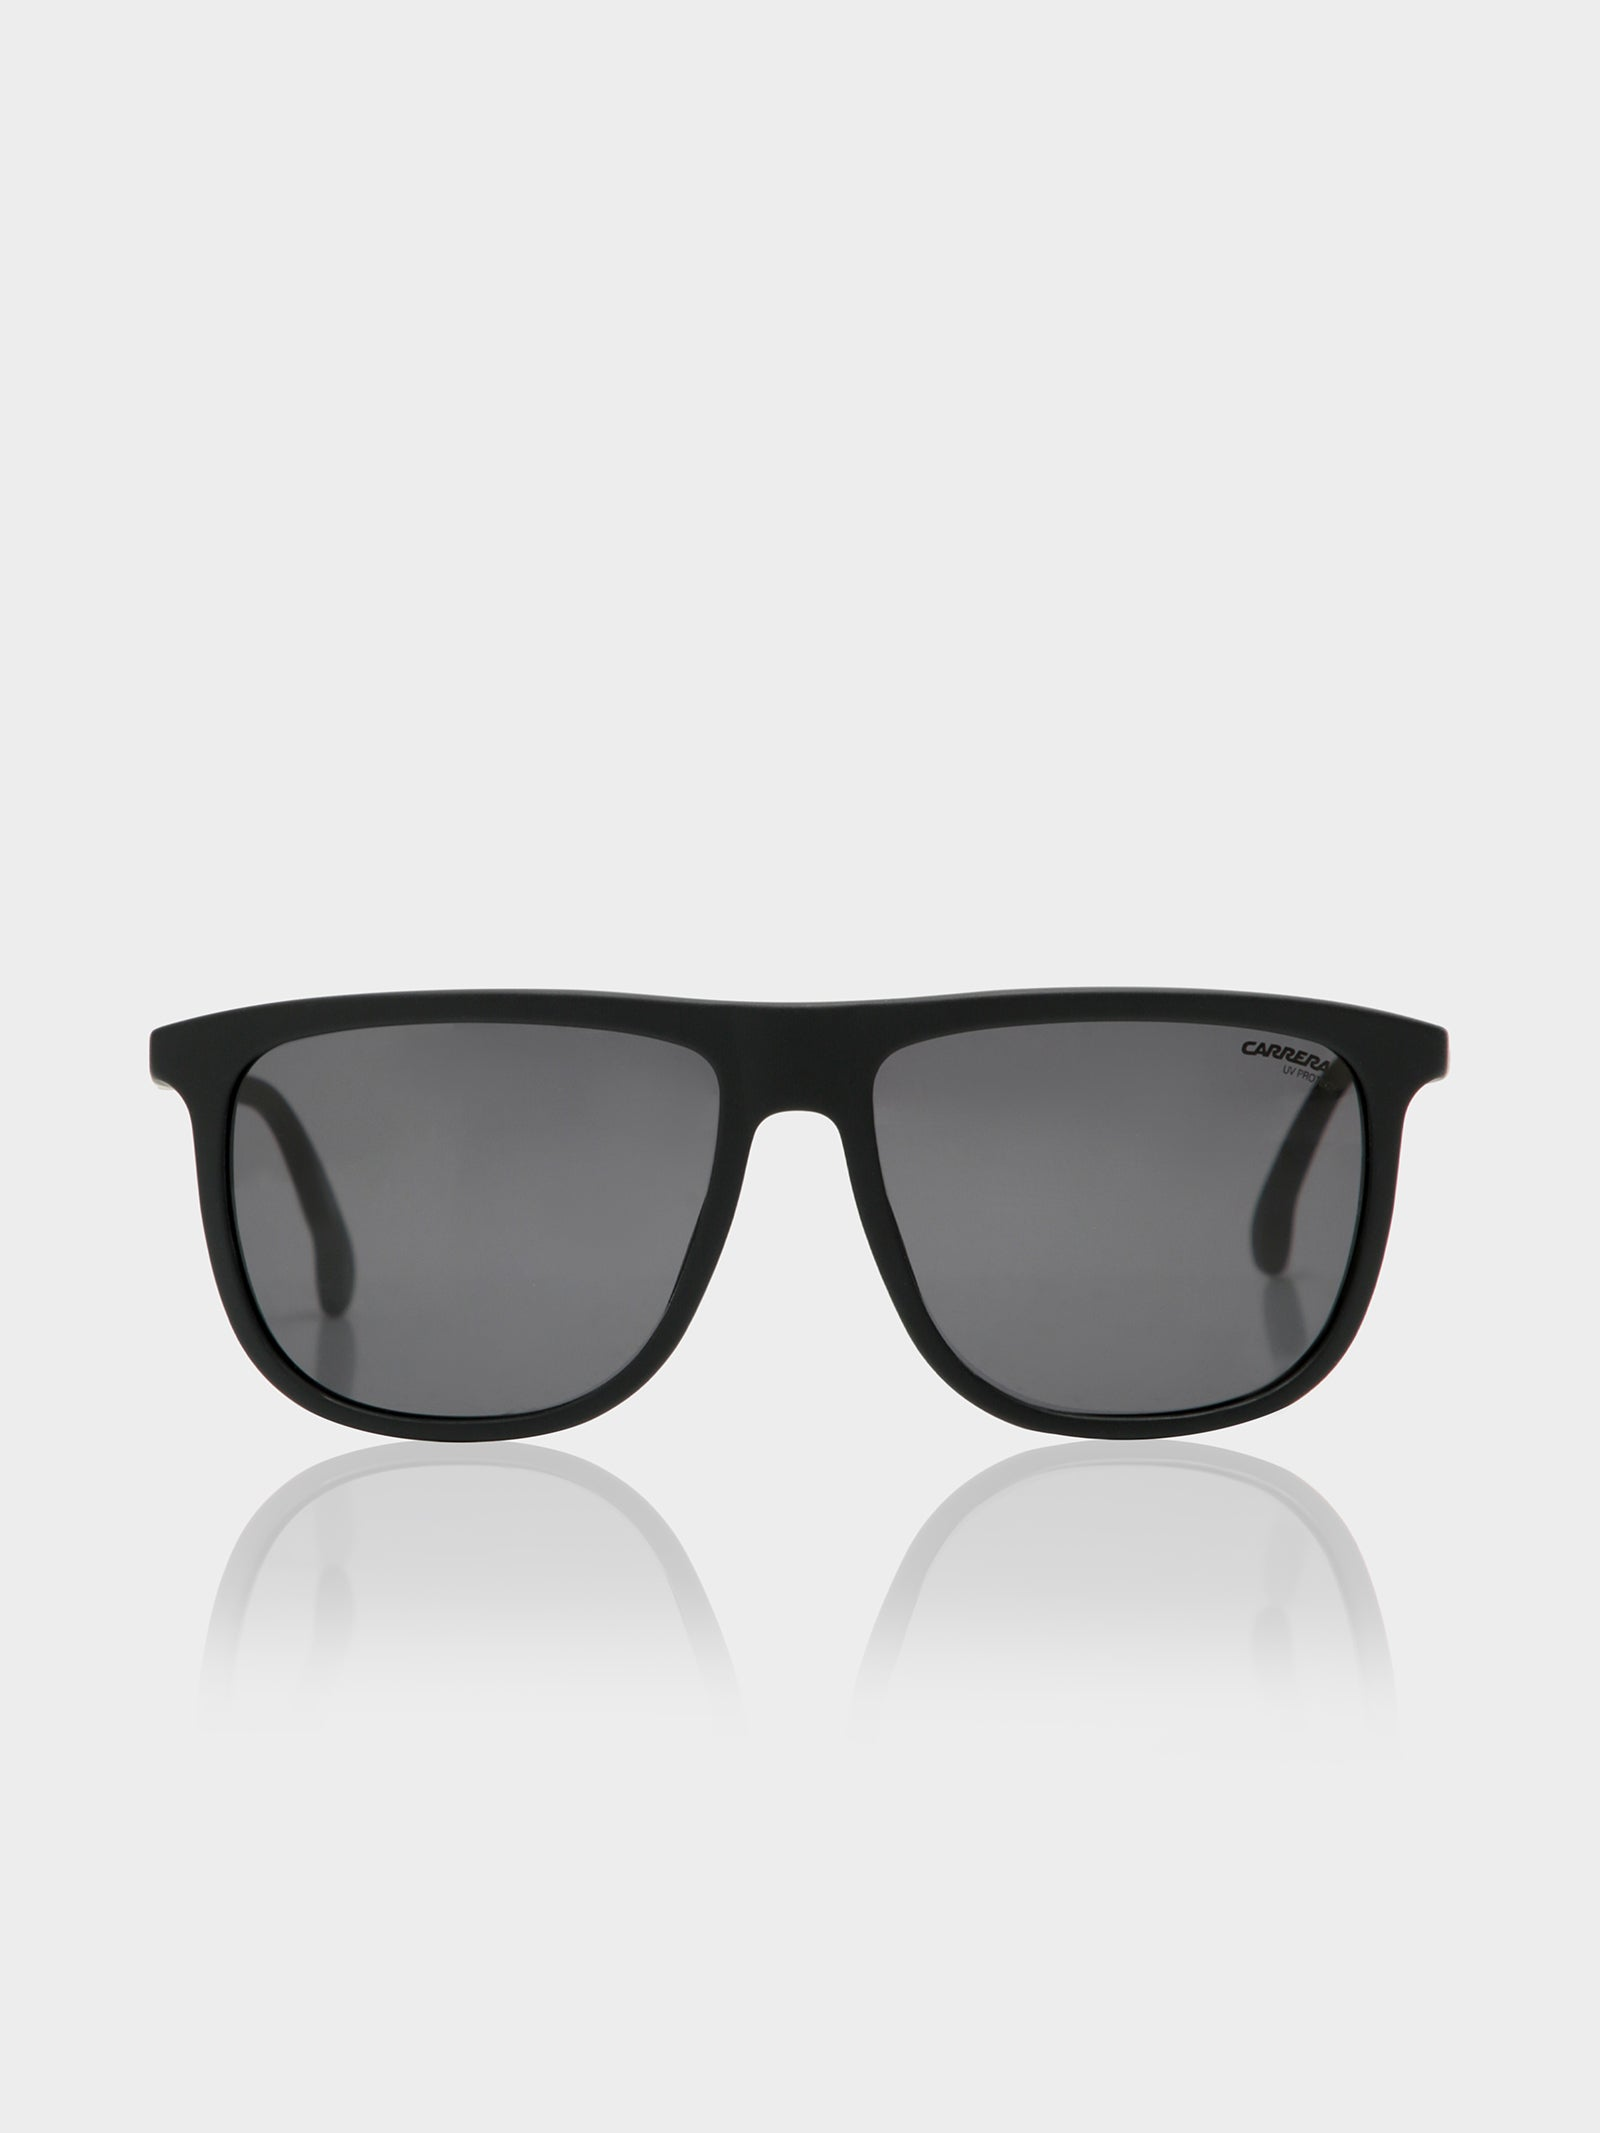 Carrera 218/S 003 Sunglasses in Matte Black